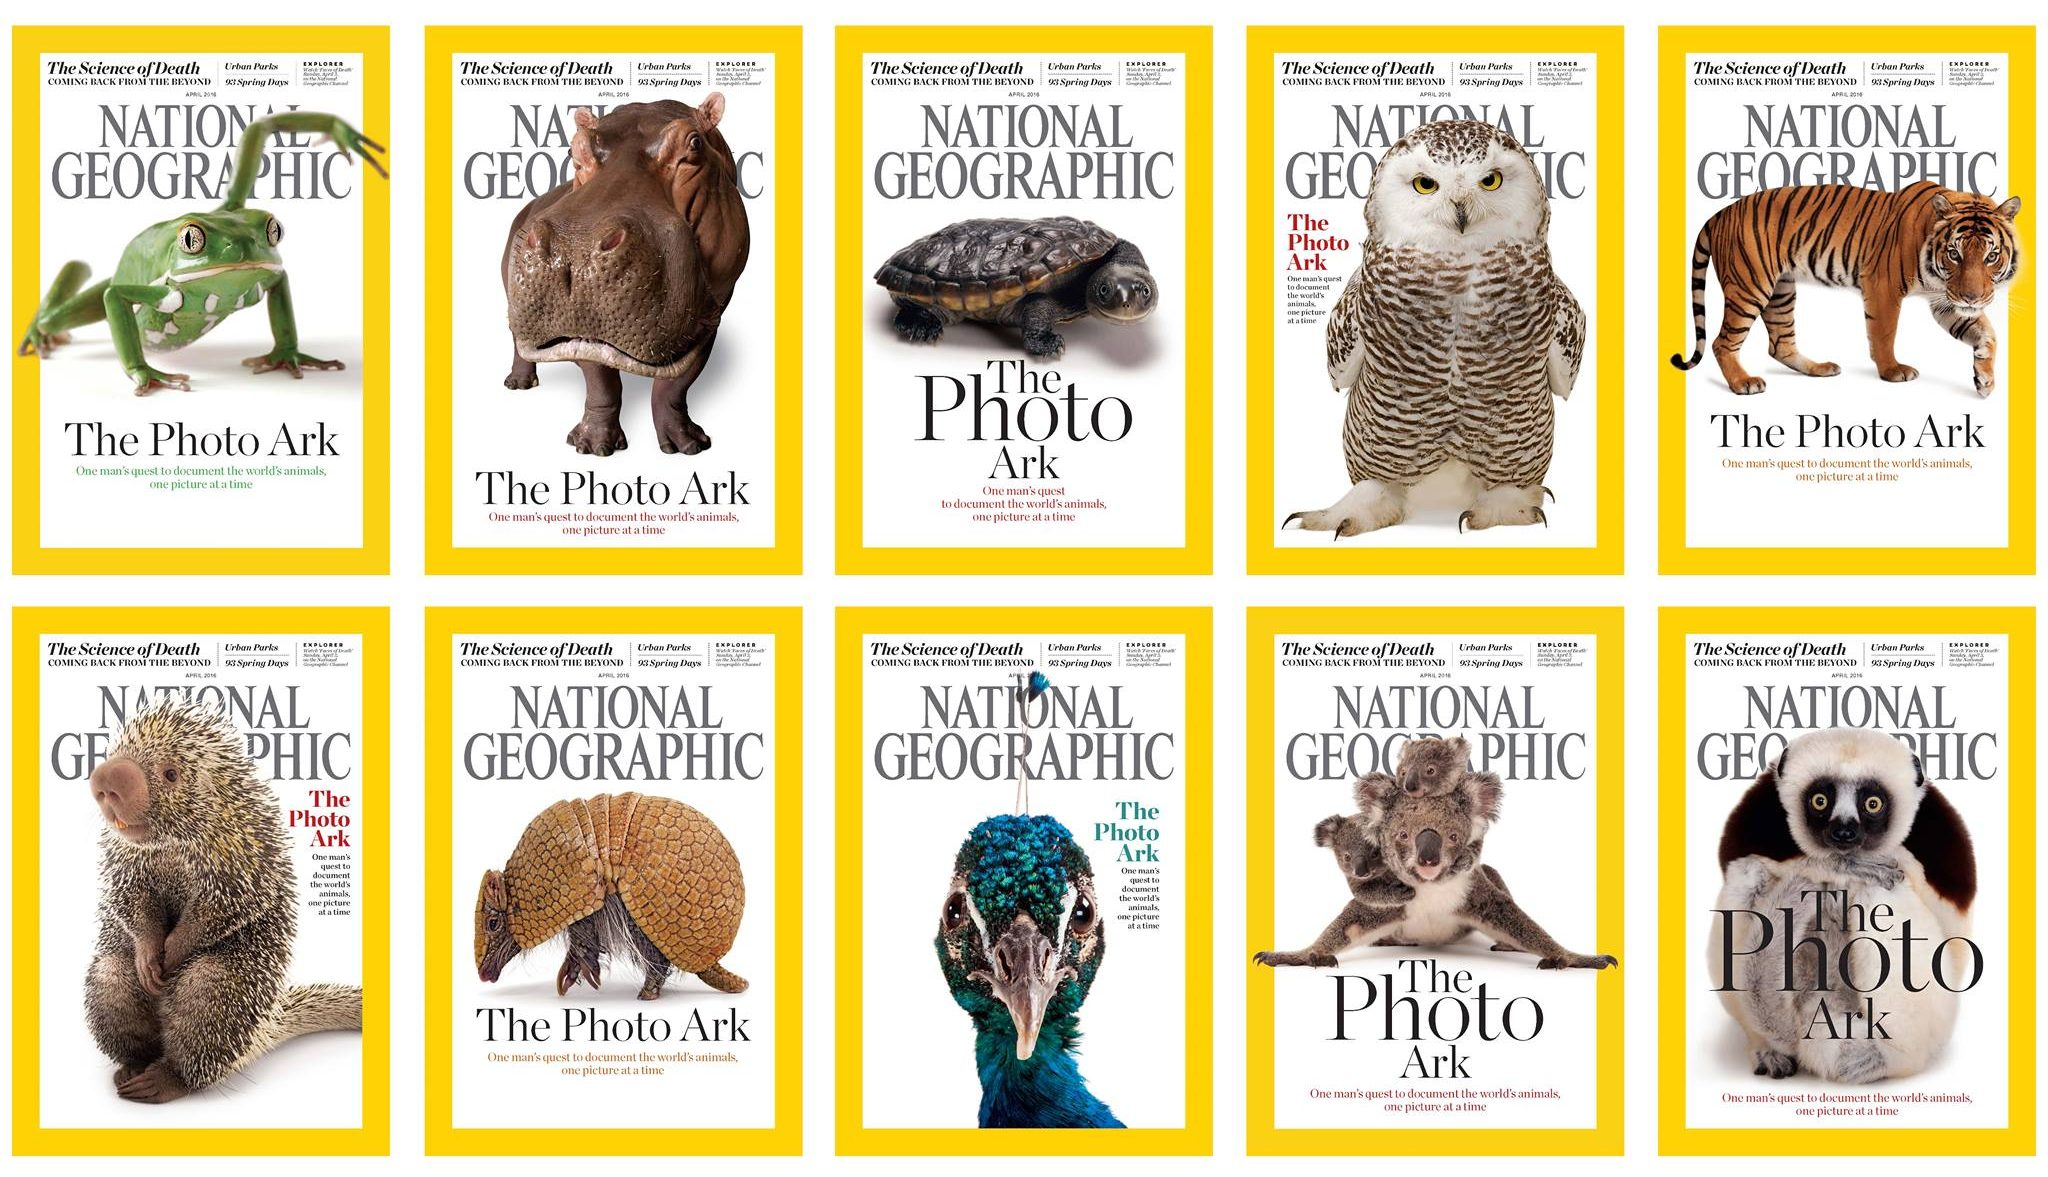 Joel Sartore, National Geographic Photographer